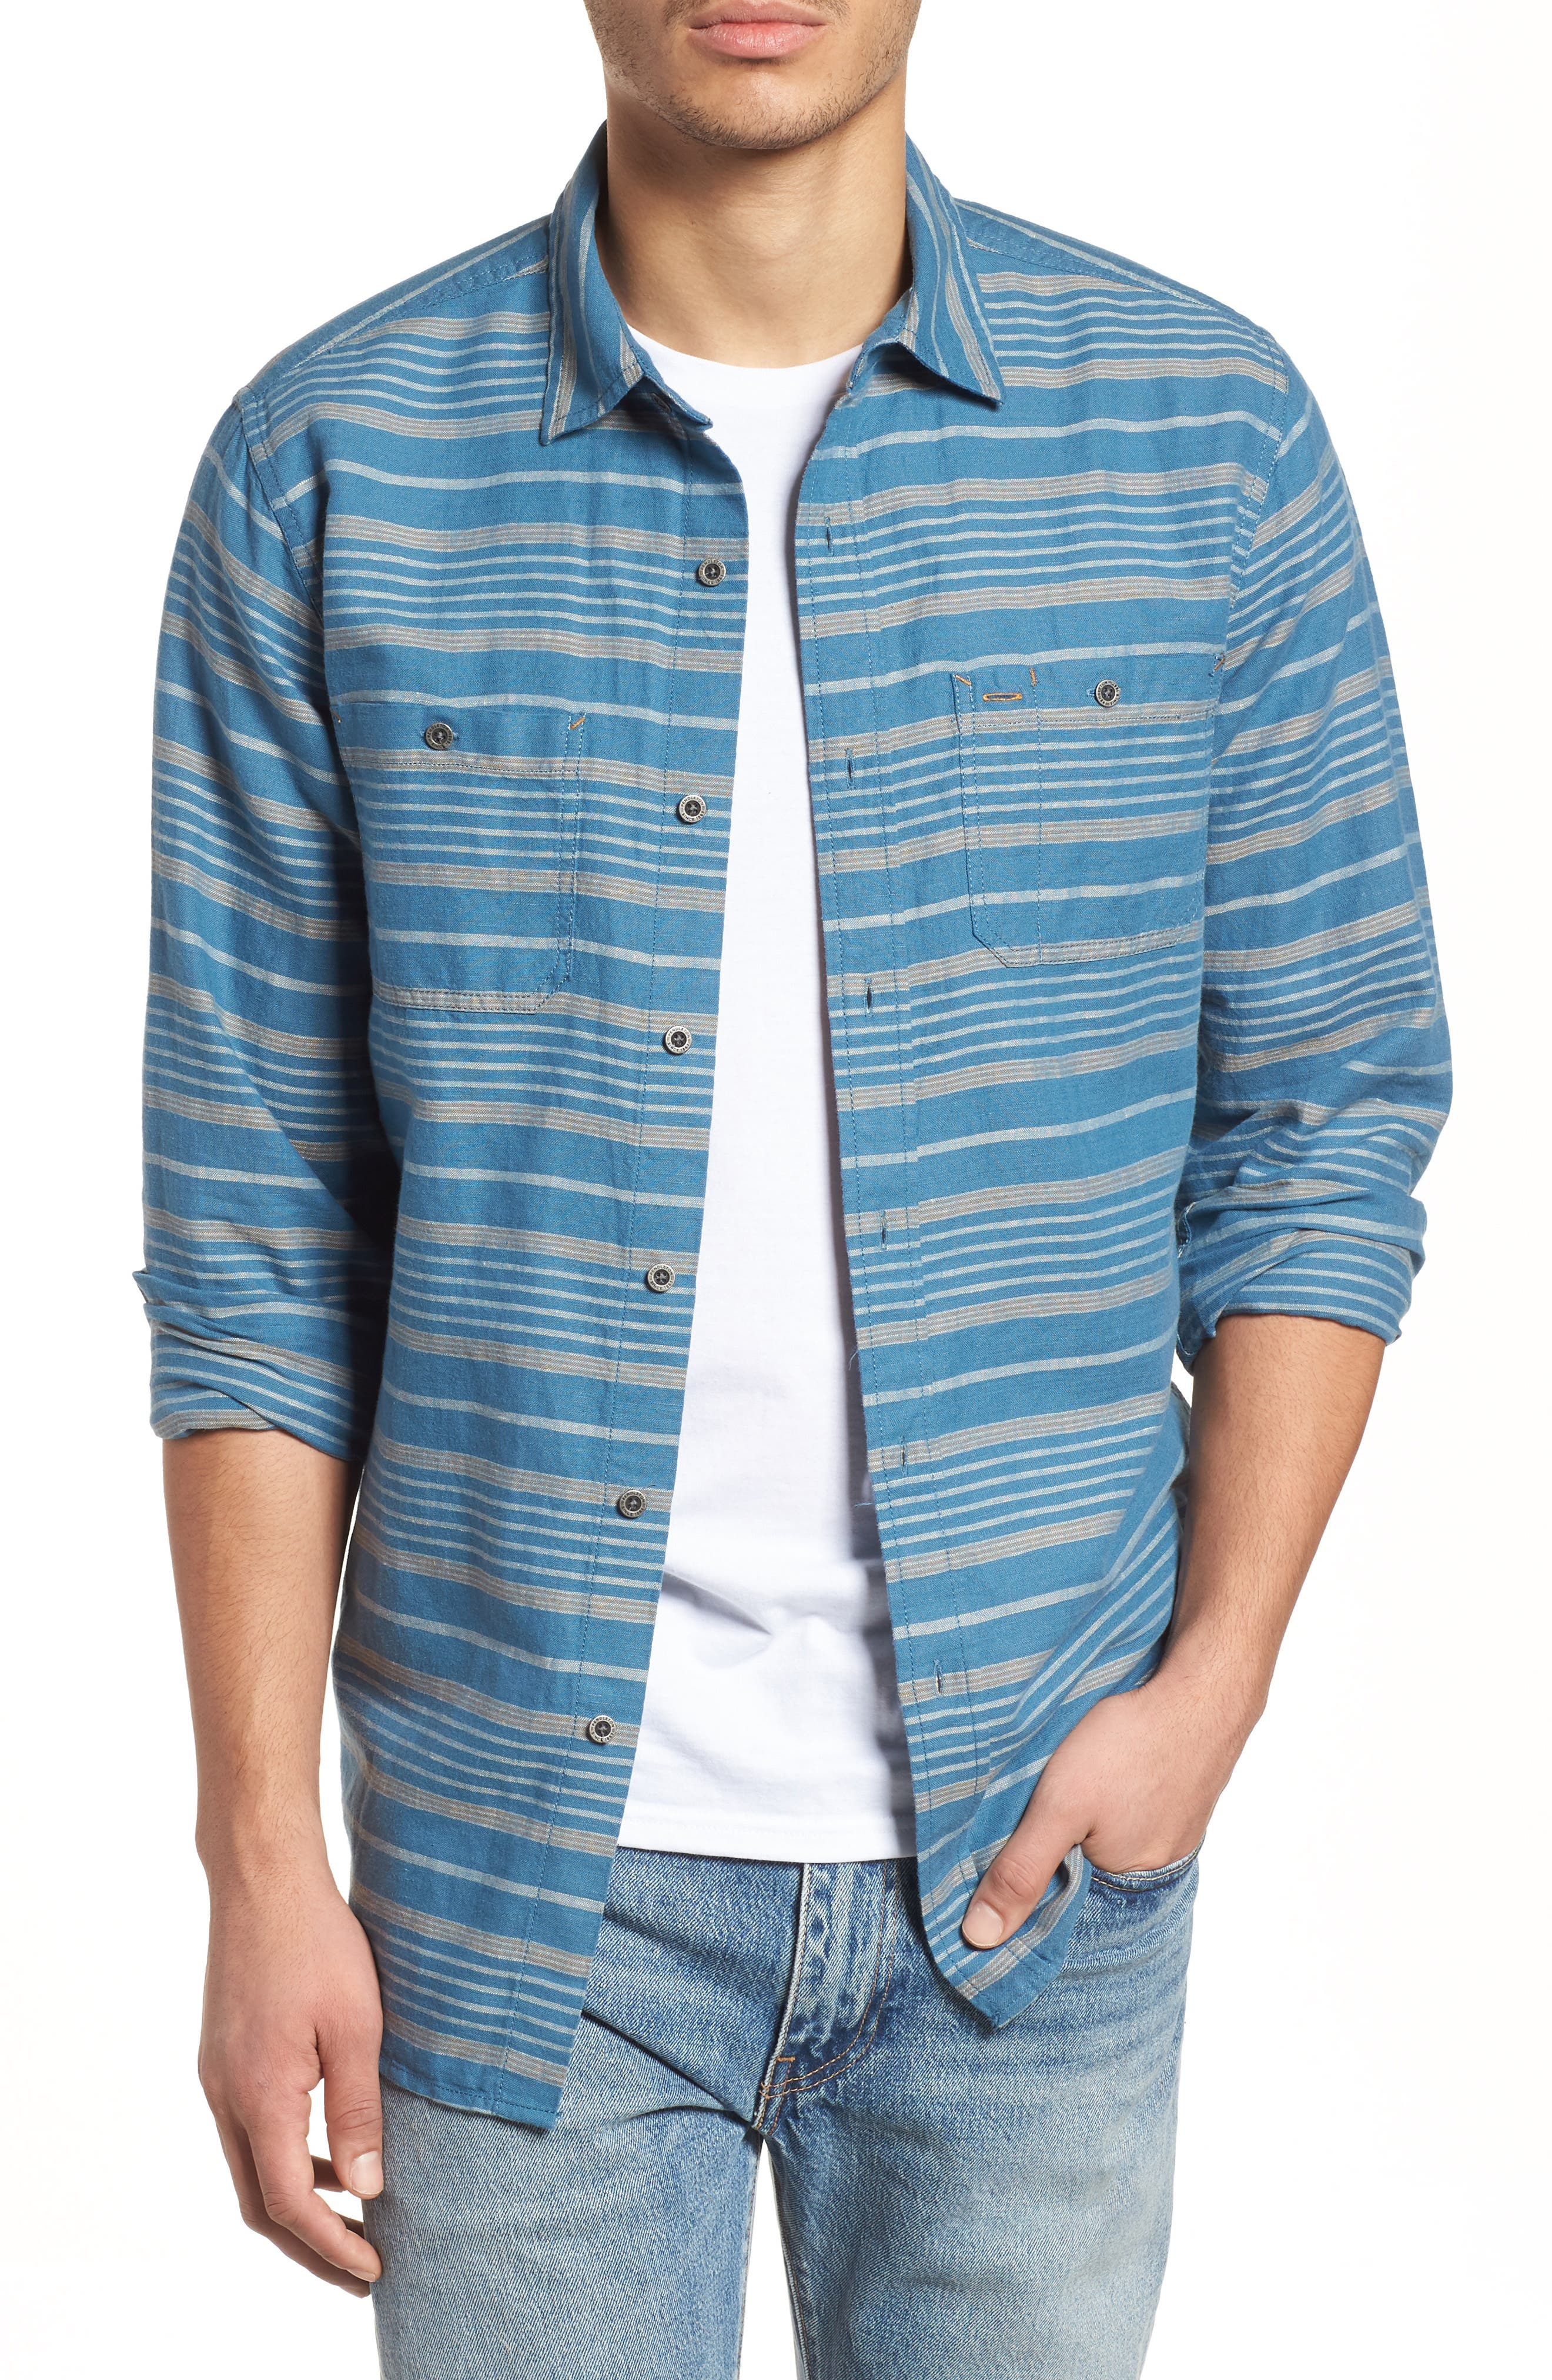 Kay Street Fitted Shirt,                         Main,                         color, 425